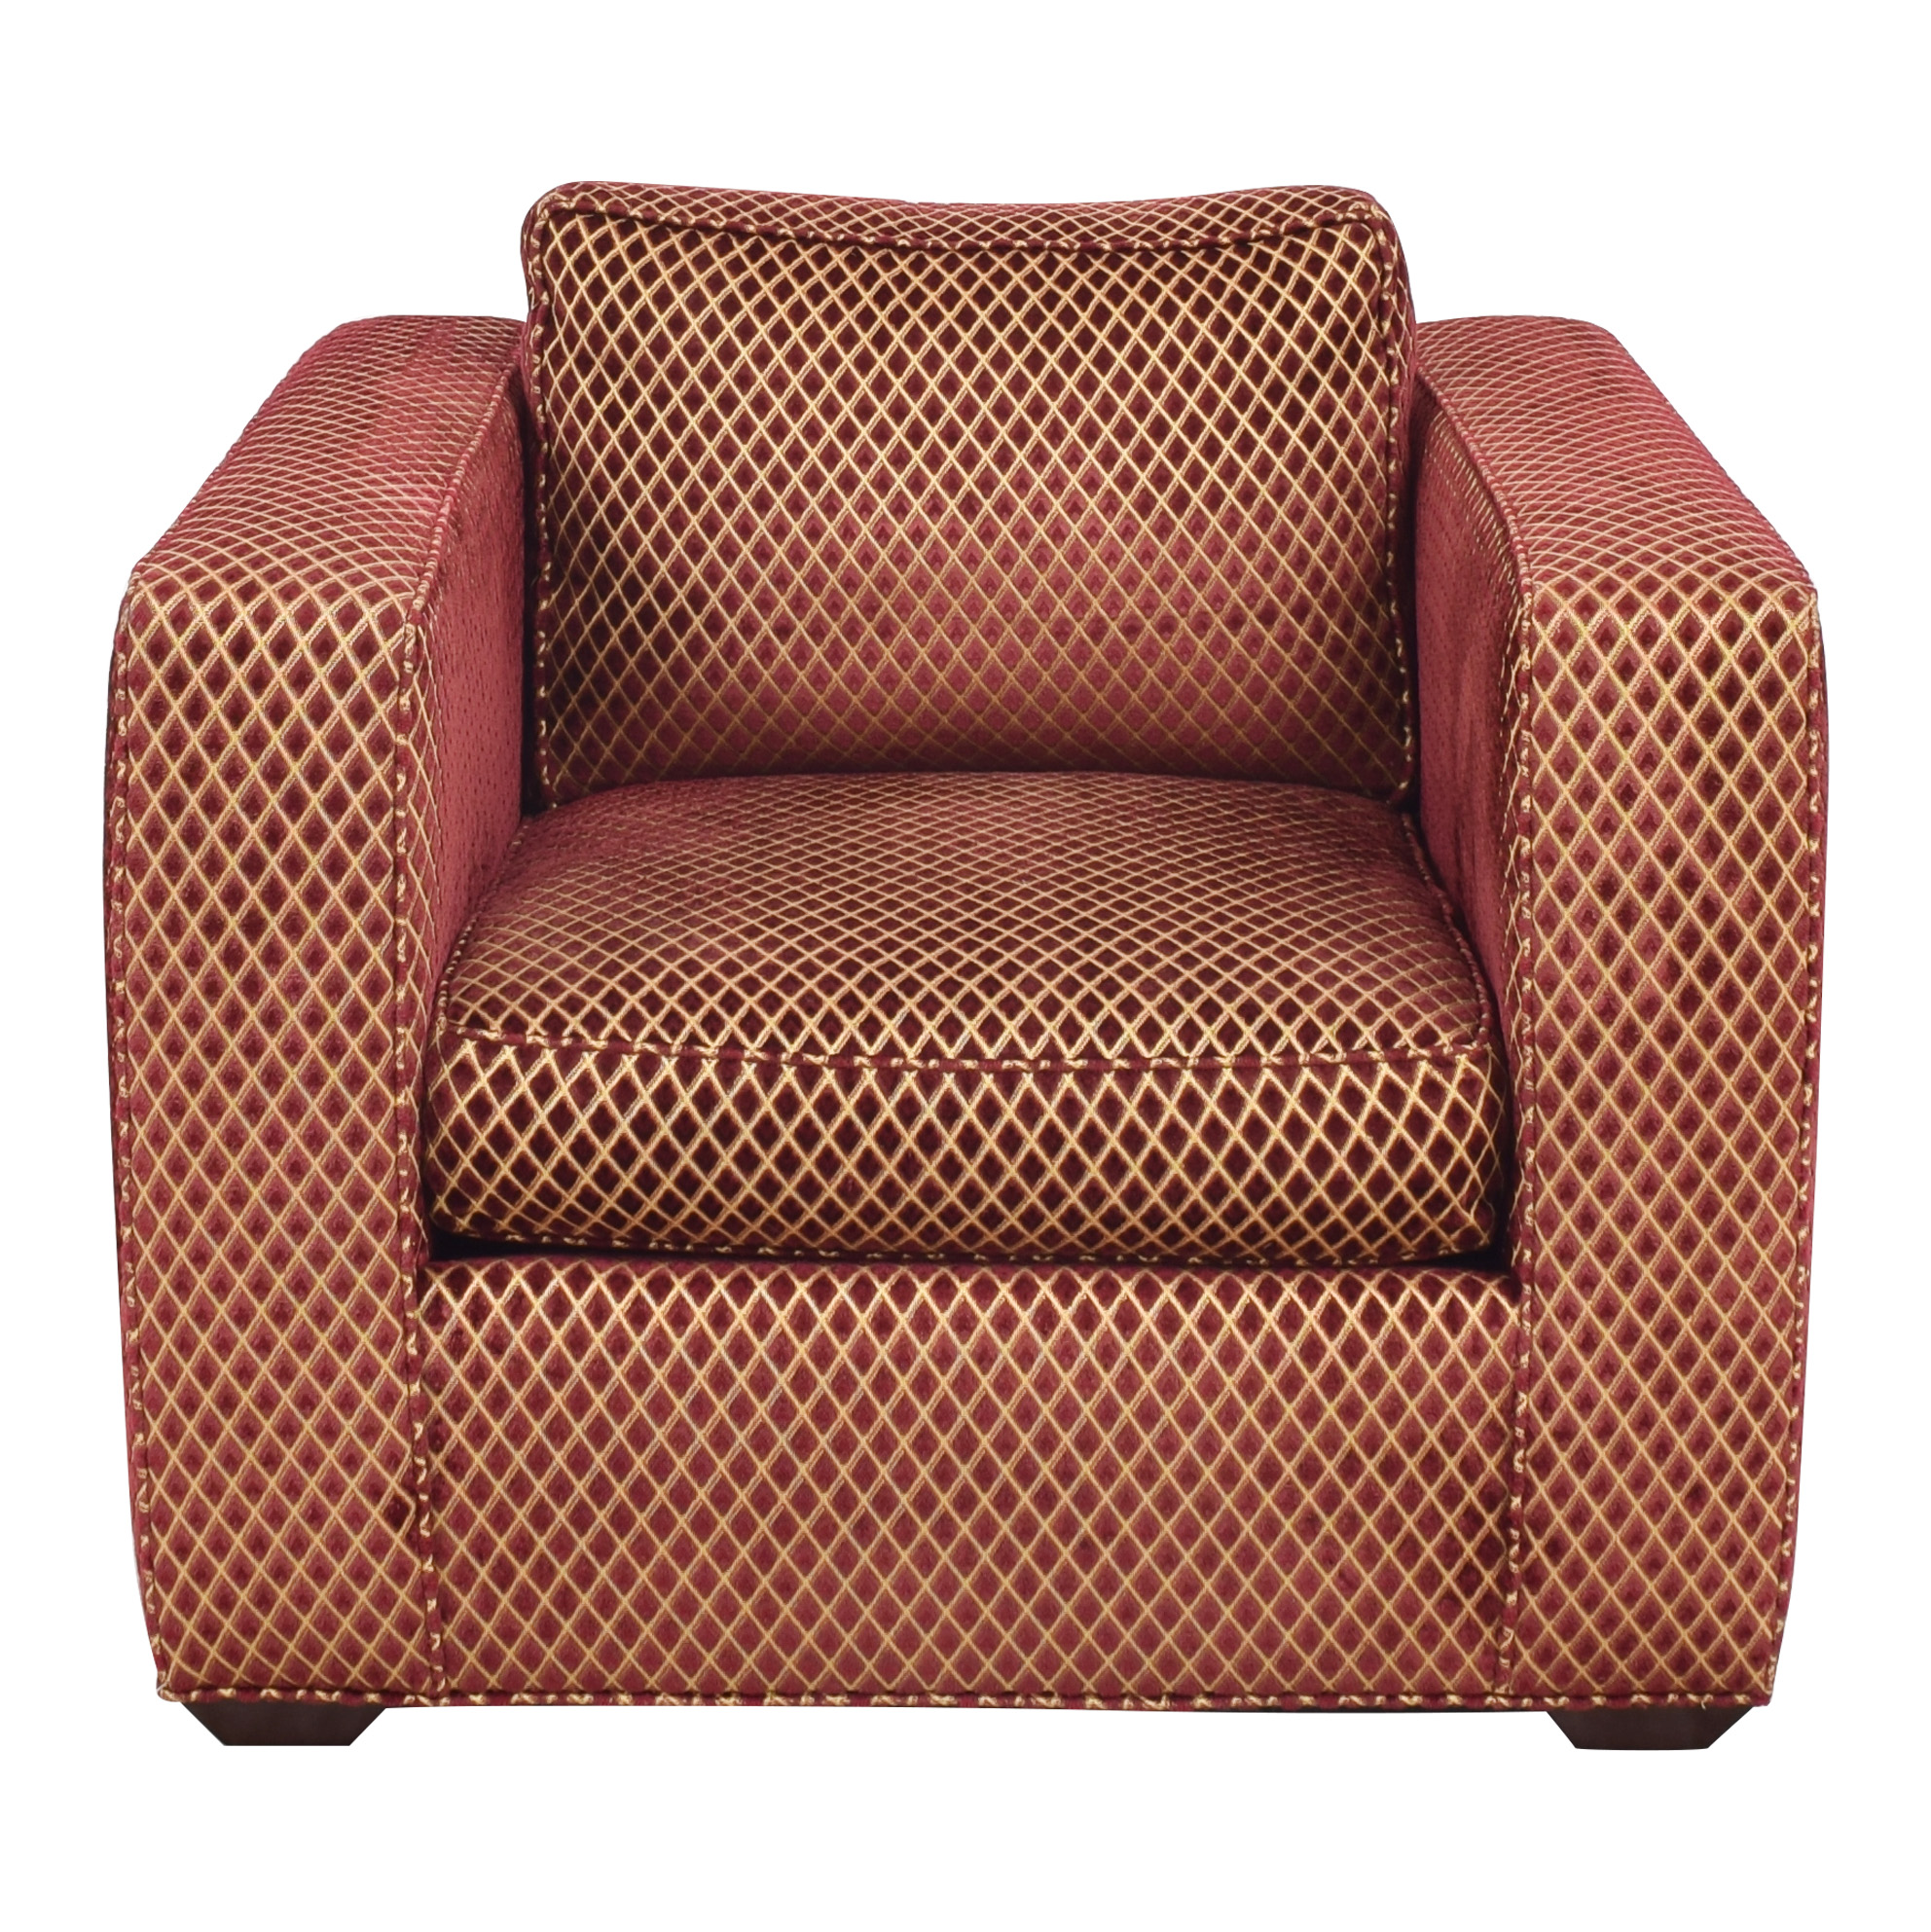 R.Jones Club Lounge Chair / Chairs